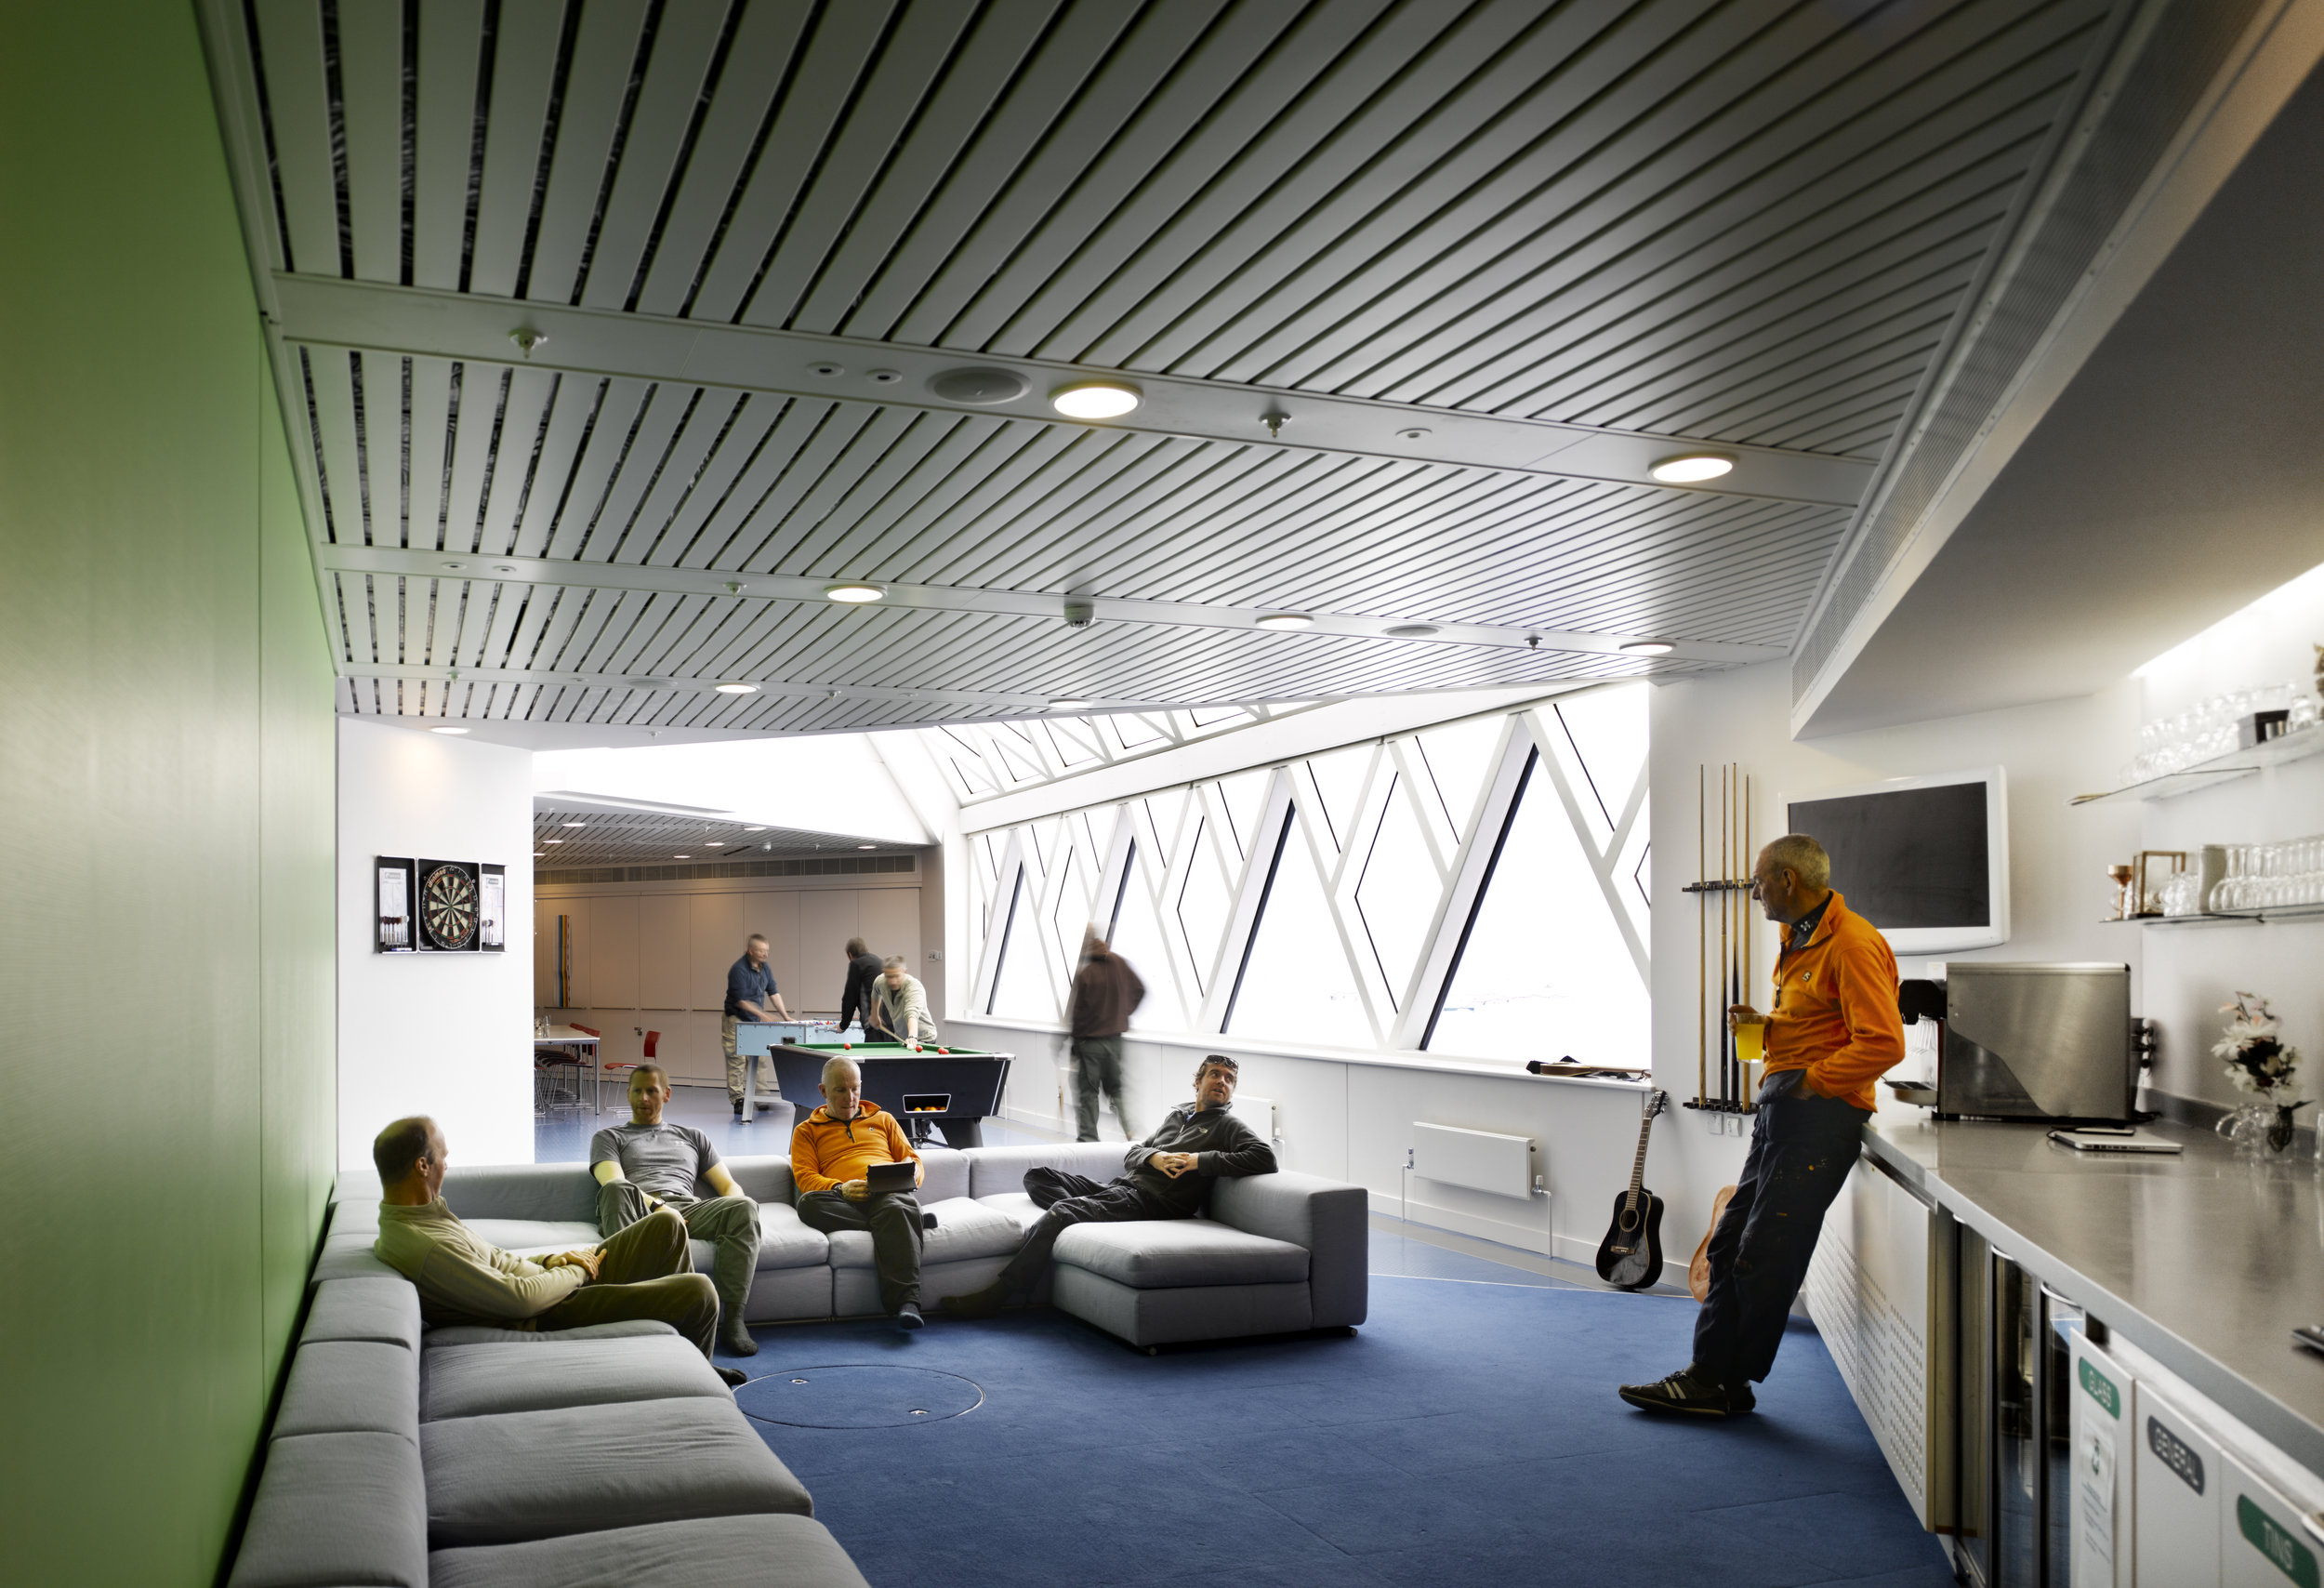 Photo credit: Interior of The Halley VI Polar Research Station by James Morris